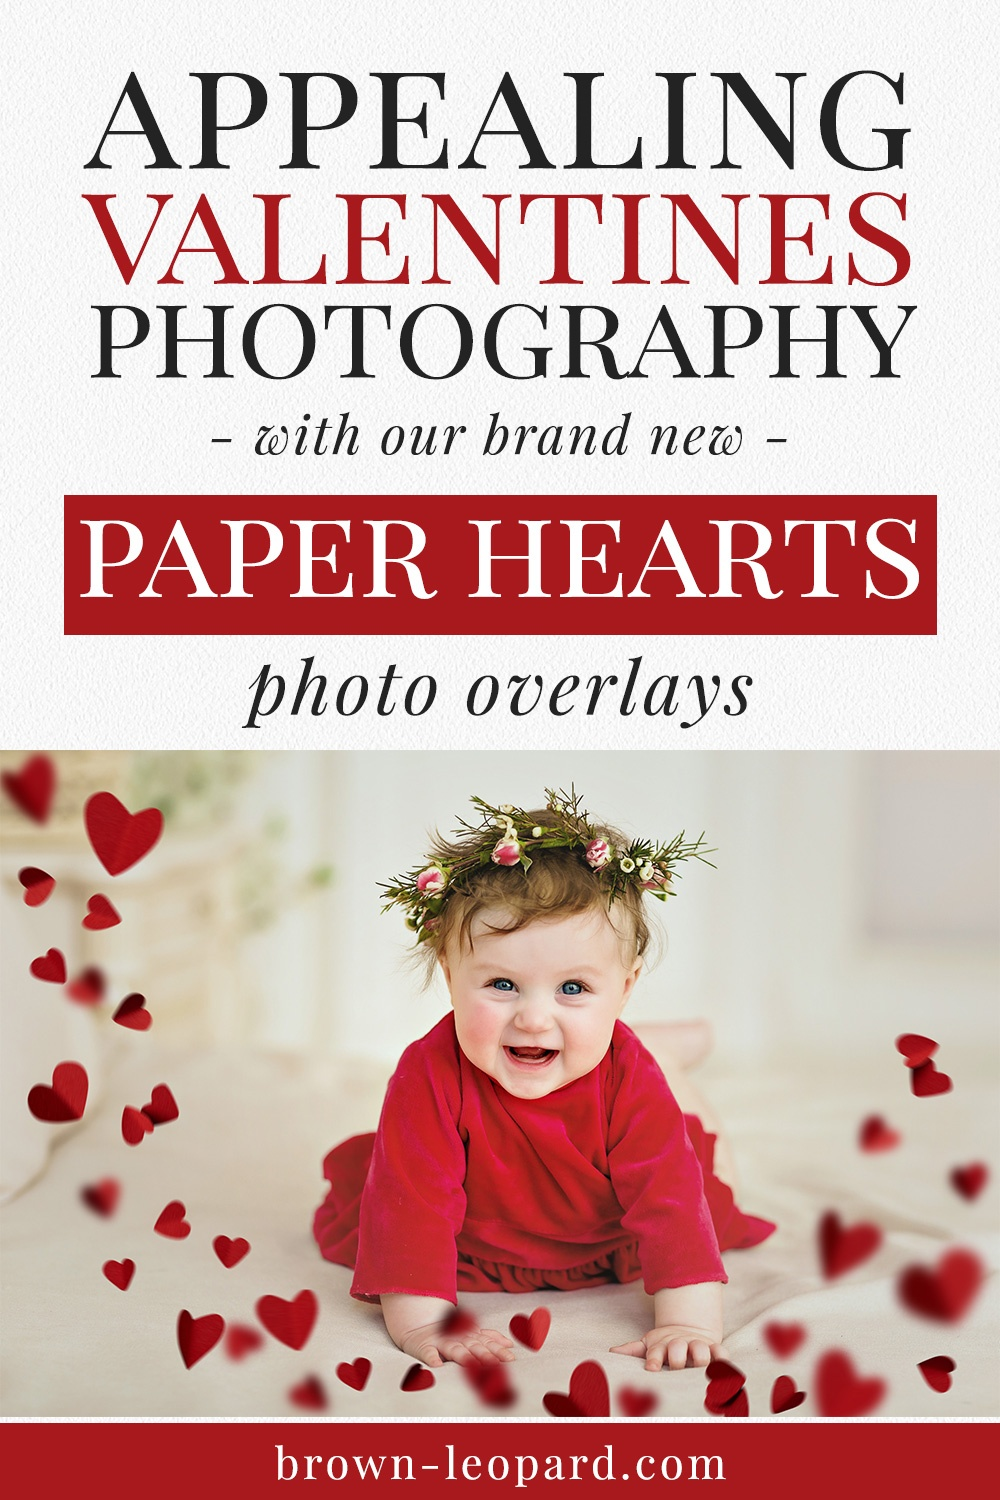 Creative Valentine photo overlays, falling paper hearts photo overlays to style original photography. 45 different pre-made scenes for simple and quick usage. Style appealing wedding photography in seconds. Great for couples and engagement photography and Valentines mini sessions. Photo overlays for Photoshop from Brown Leopard.